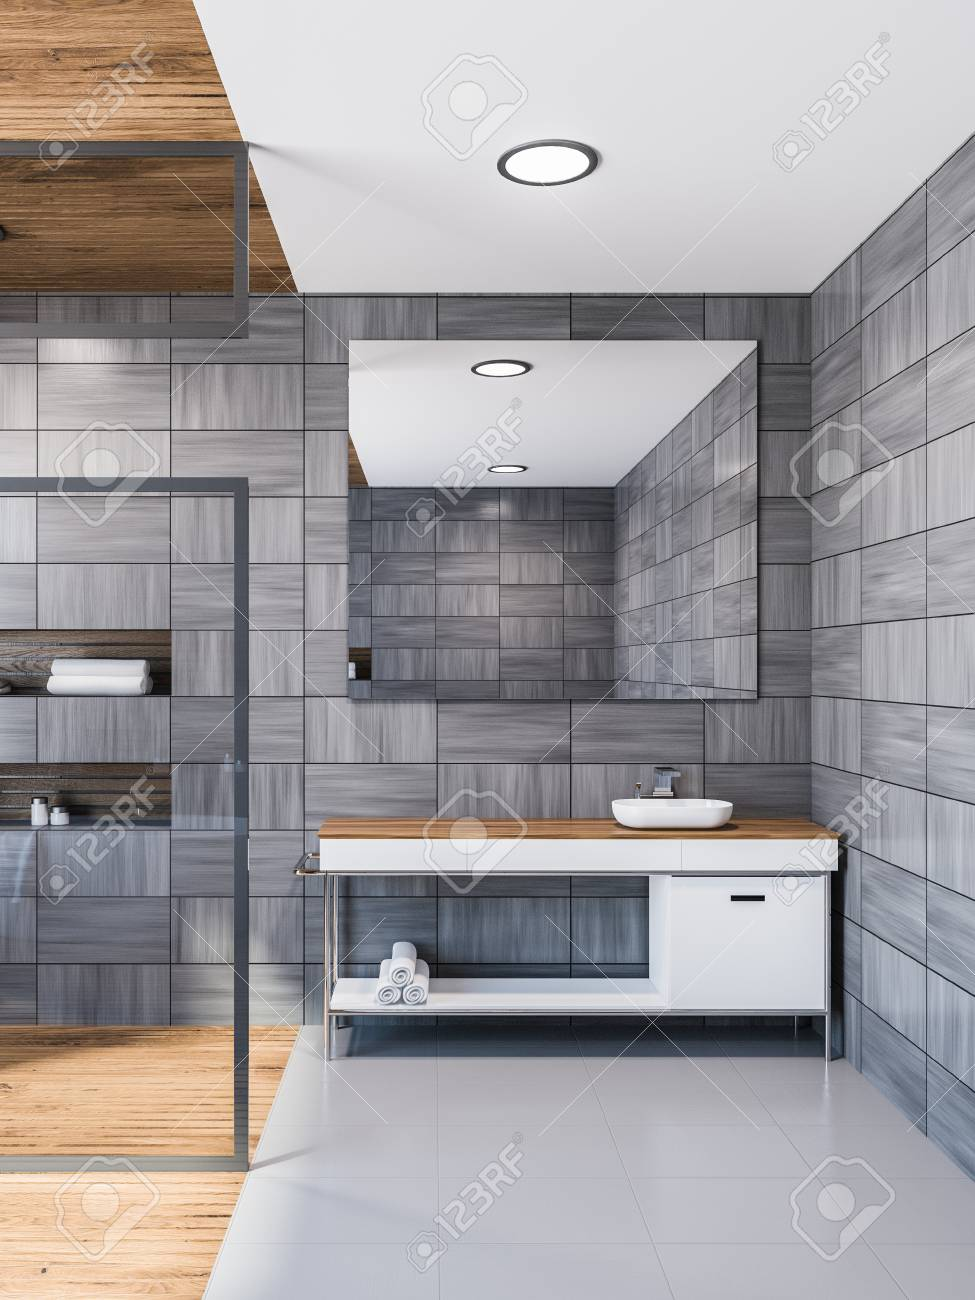 gray wooden tile bathroom interior with gray floor and a glass